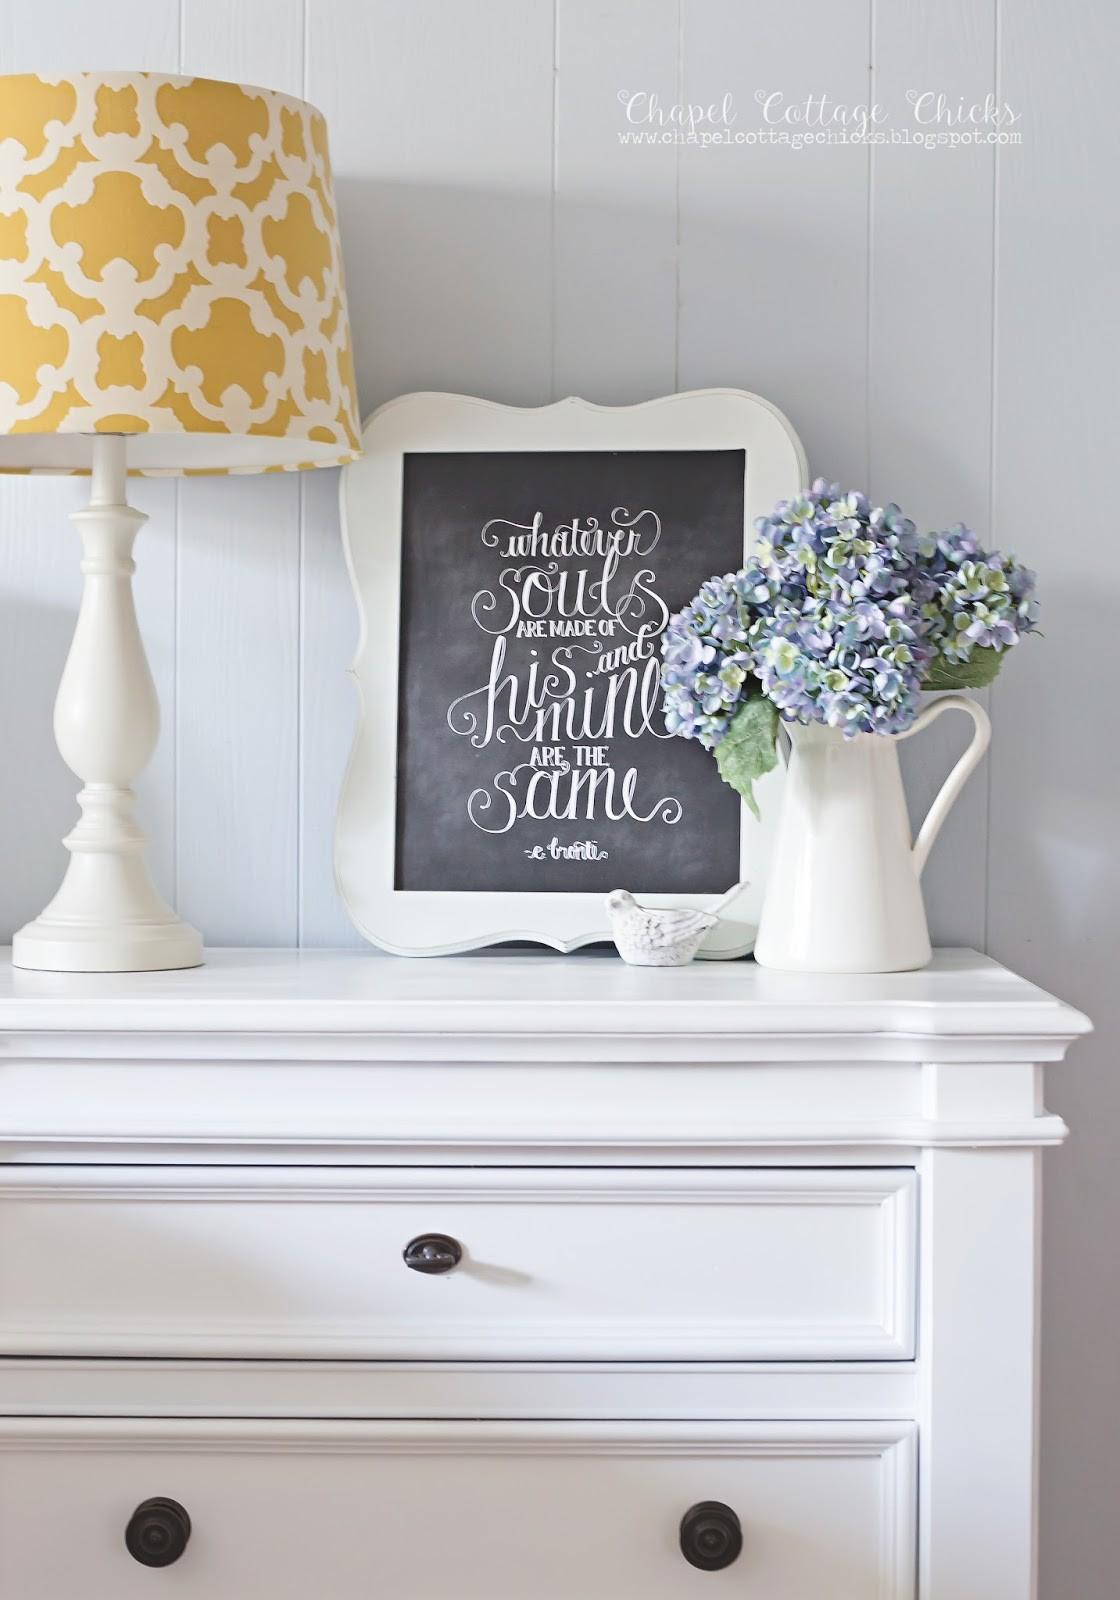 Chapel Cottage Chicks New Nightstand Gets Makeover